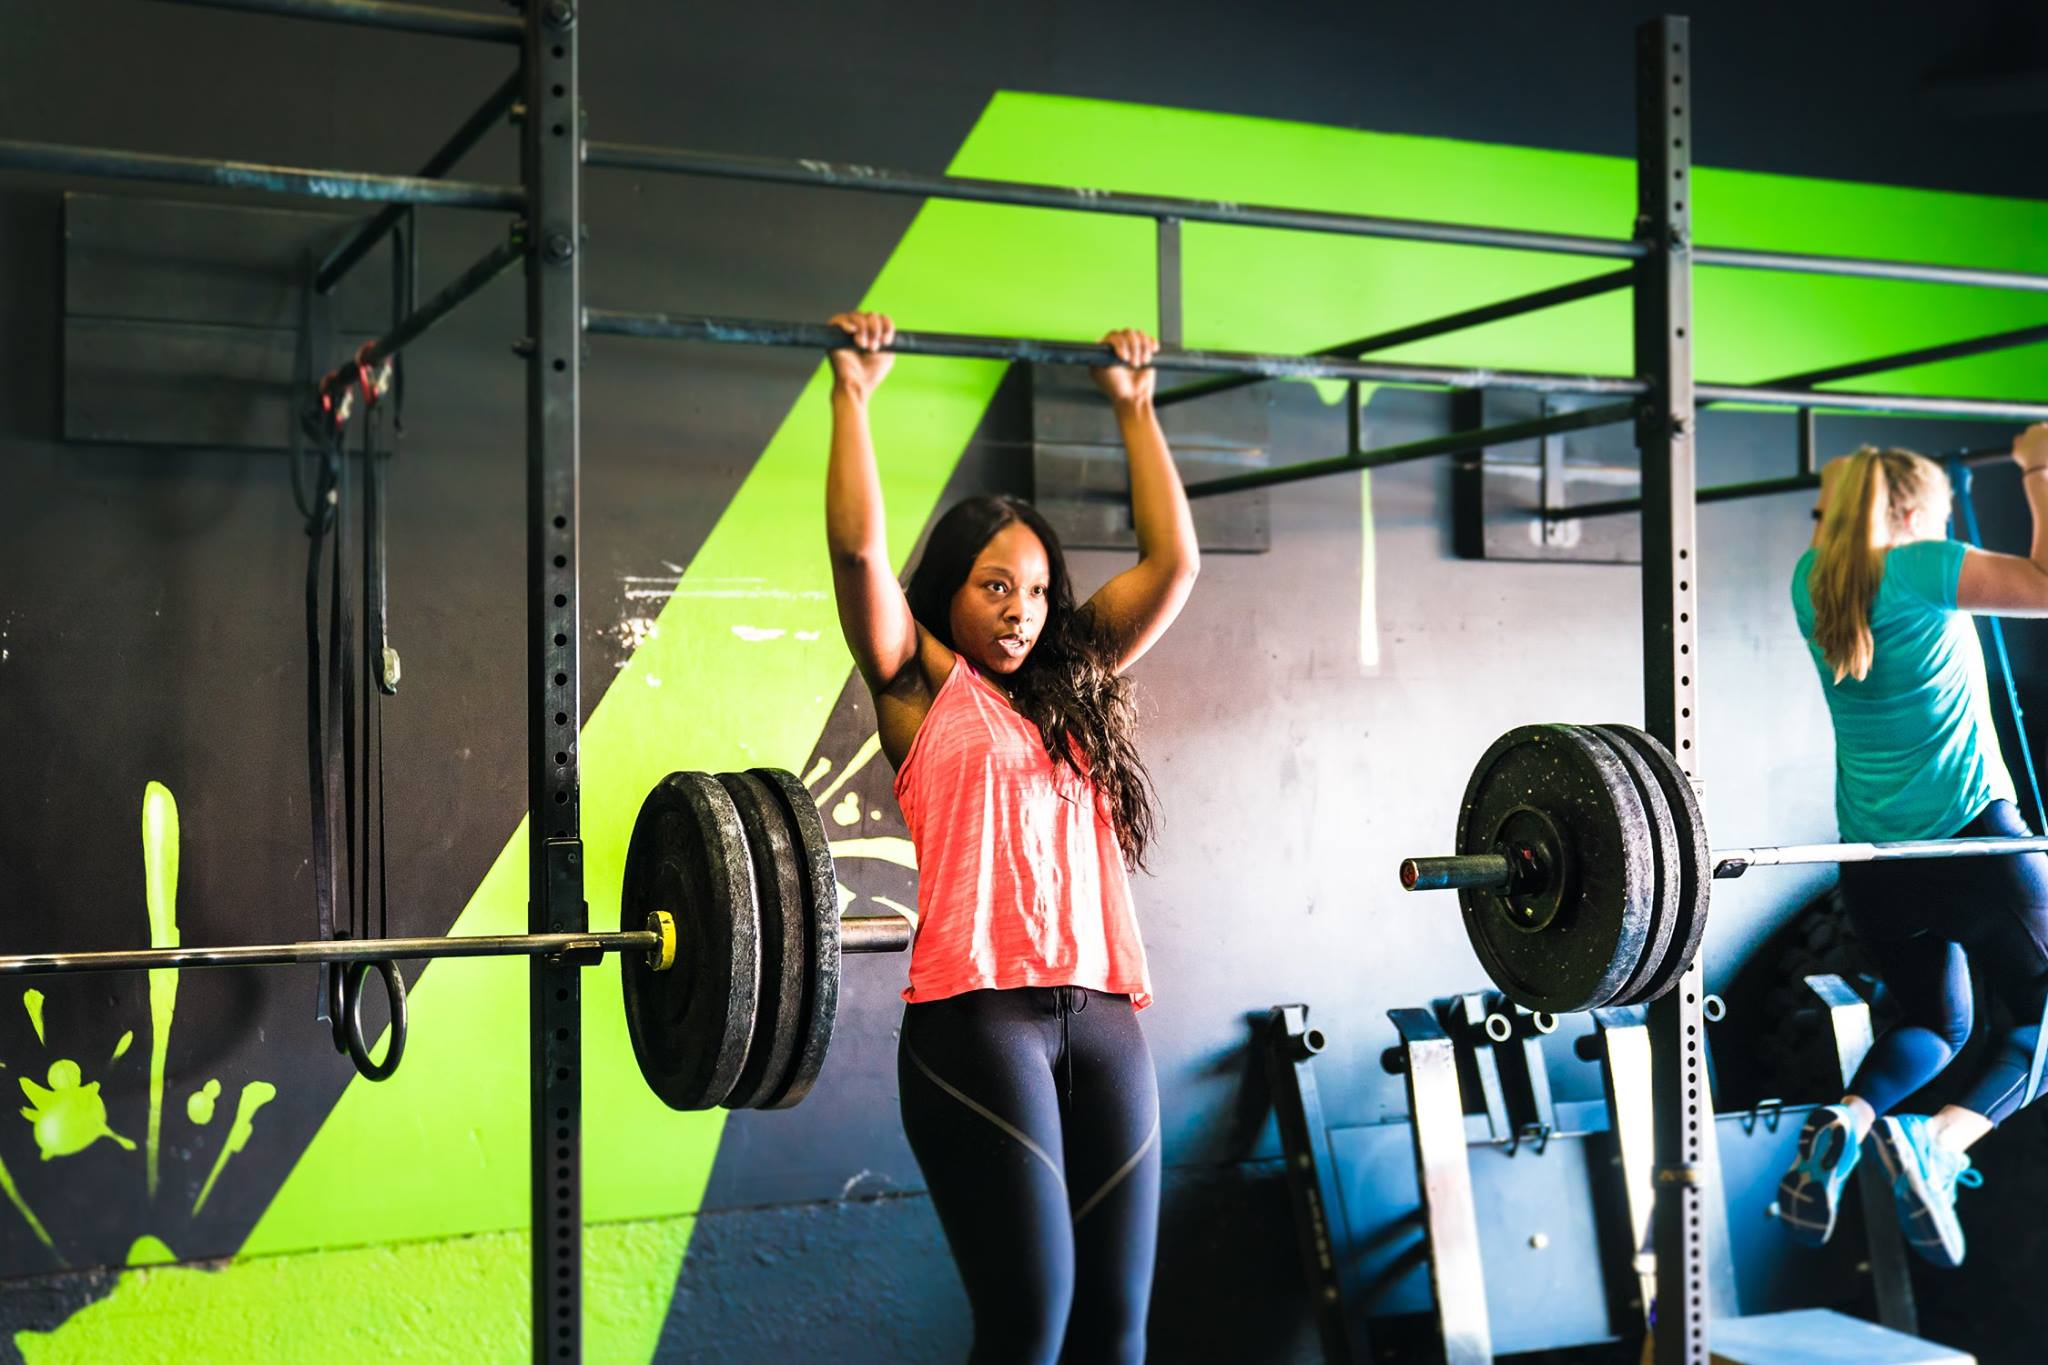 crossfit, class, training, workout, fitness, health, coaching, gym, tacoma, pull up